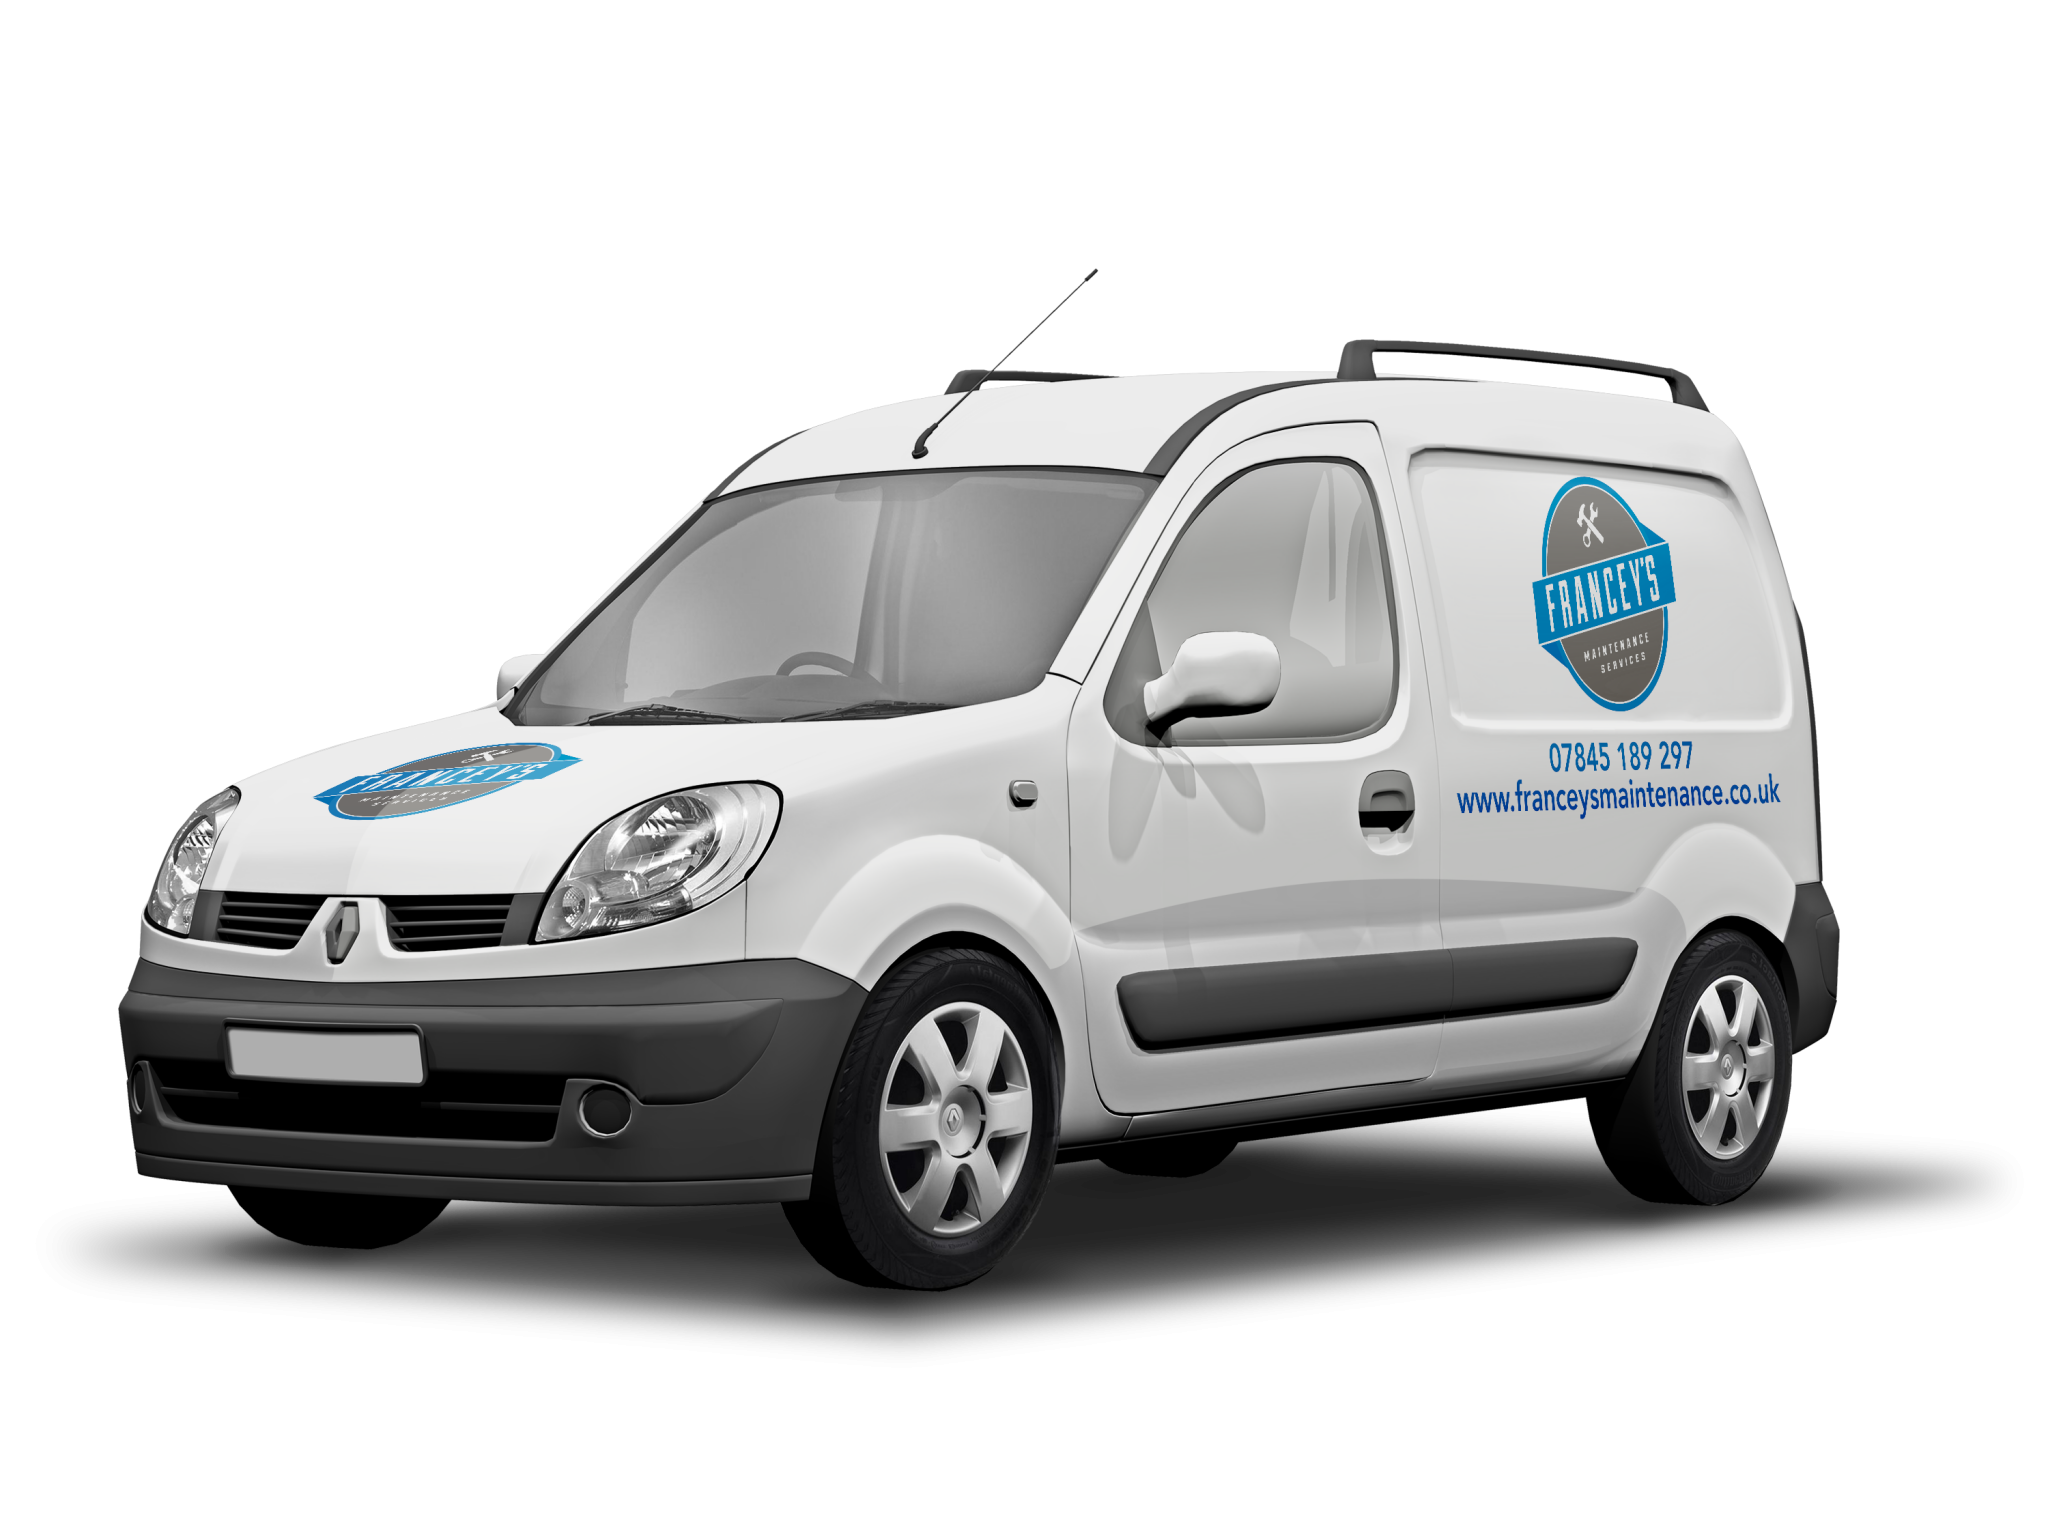 Small white van with logo of Francey's Maintenance on bonnet and side panel